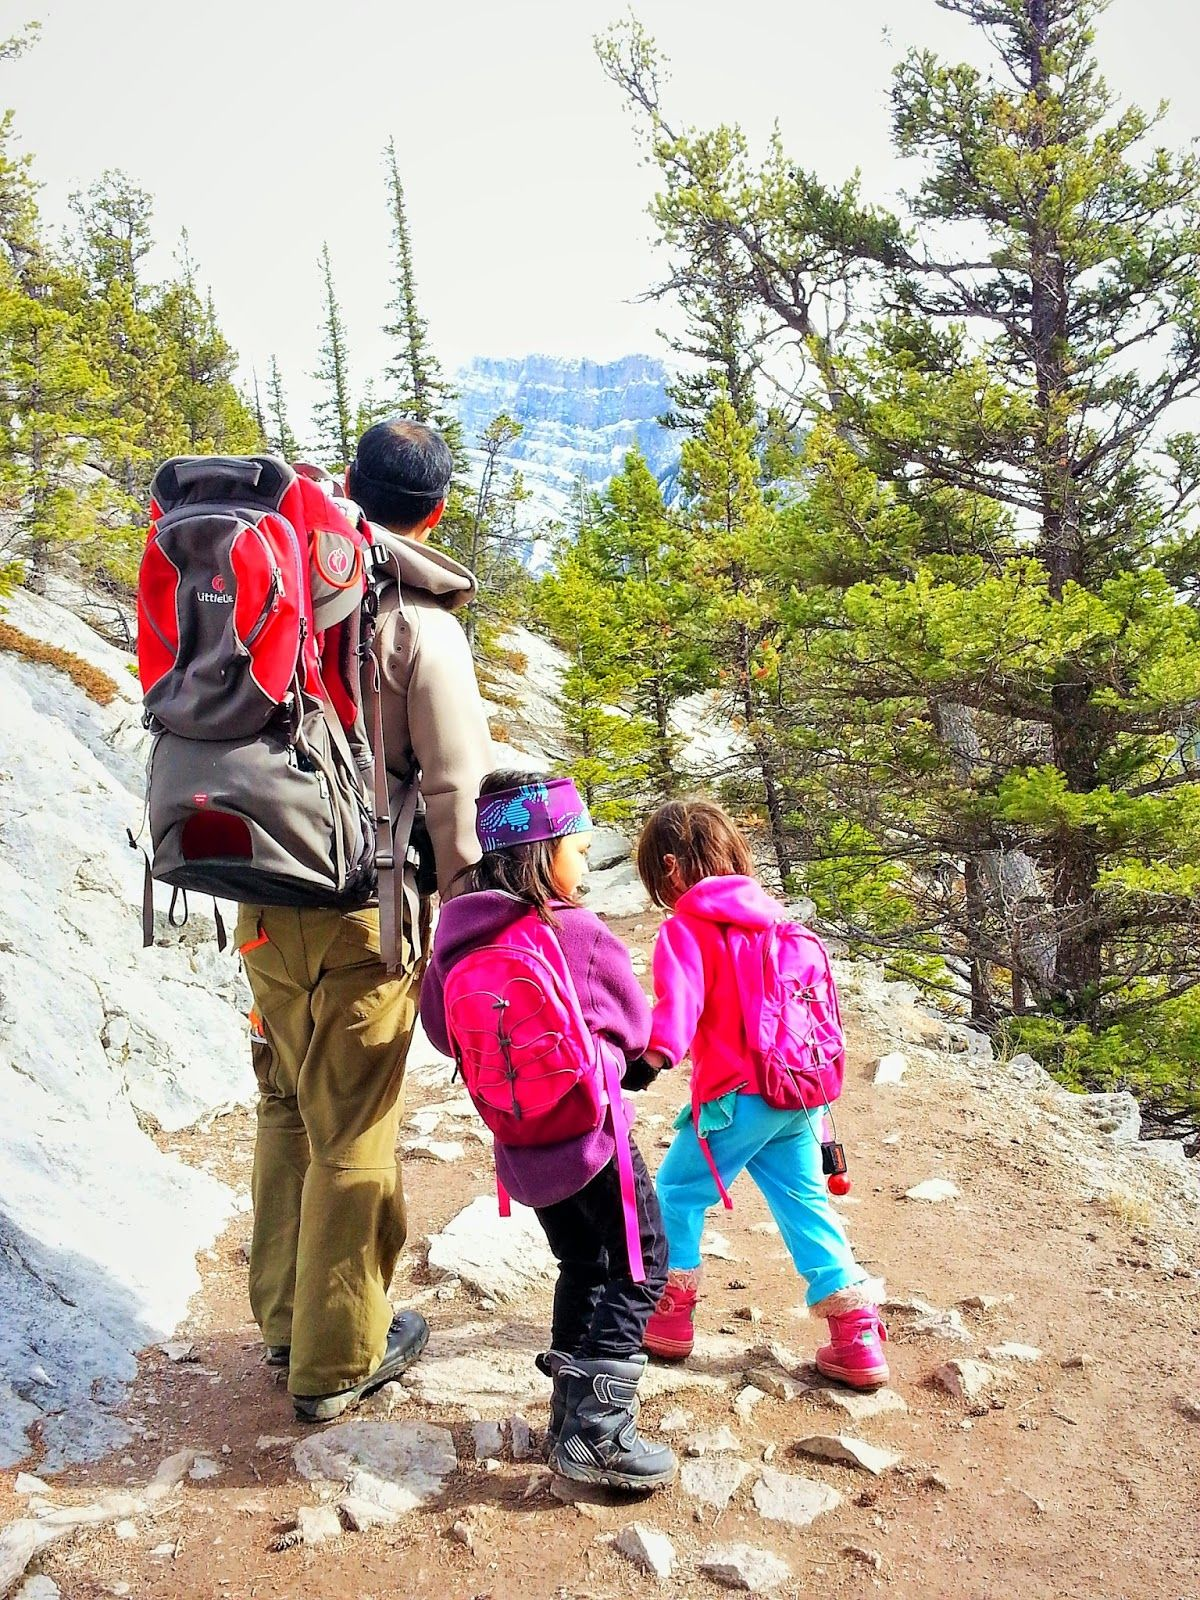 Why Kids Need Wilderness And Adventure >> Why Kids Need Wilderness And Adventure More Than Ever Future Kids